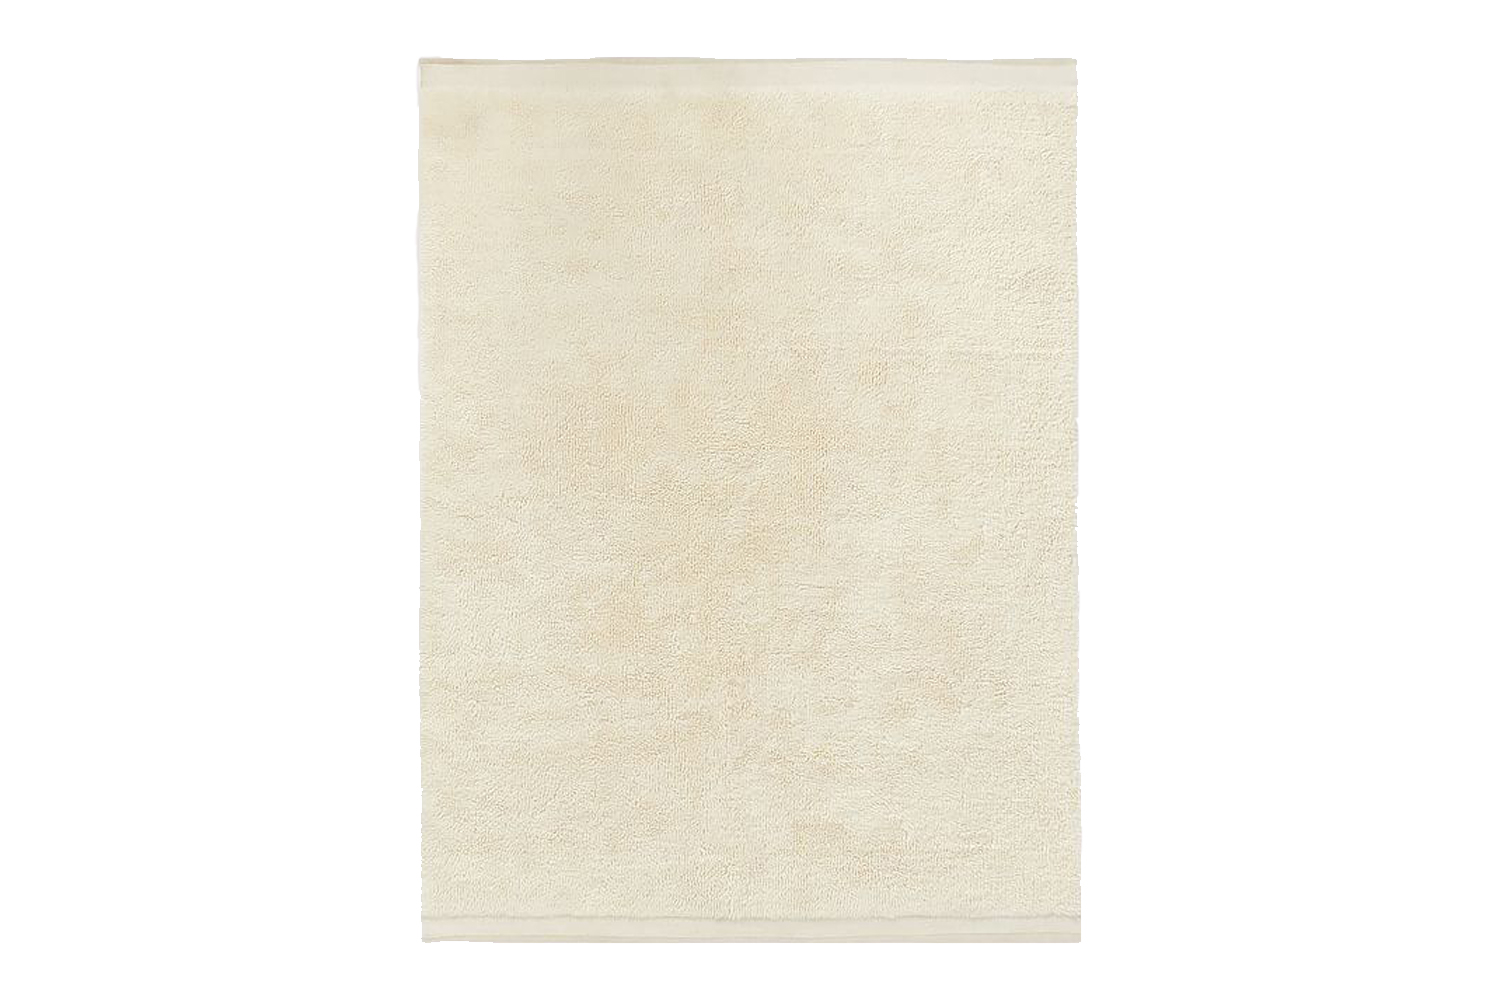 the west elm hand loomed solid shag rug is \$\1,\135 for the 9 by \1\2 foot siz 17